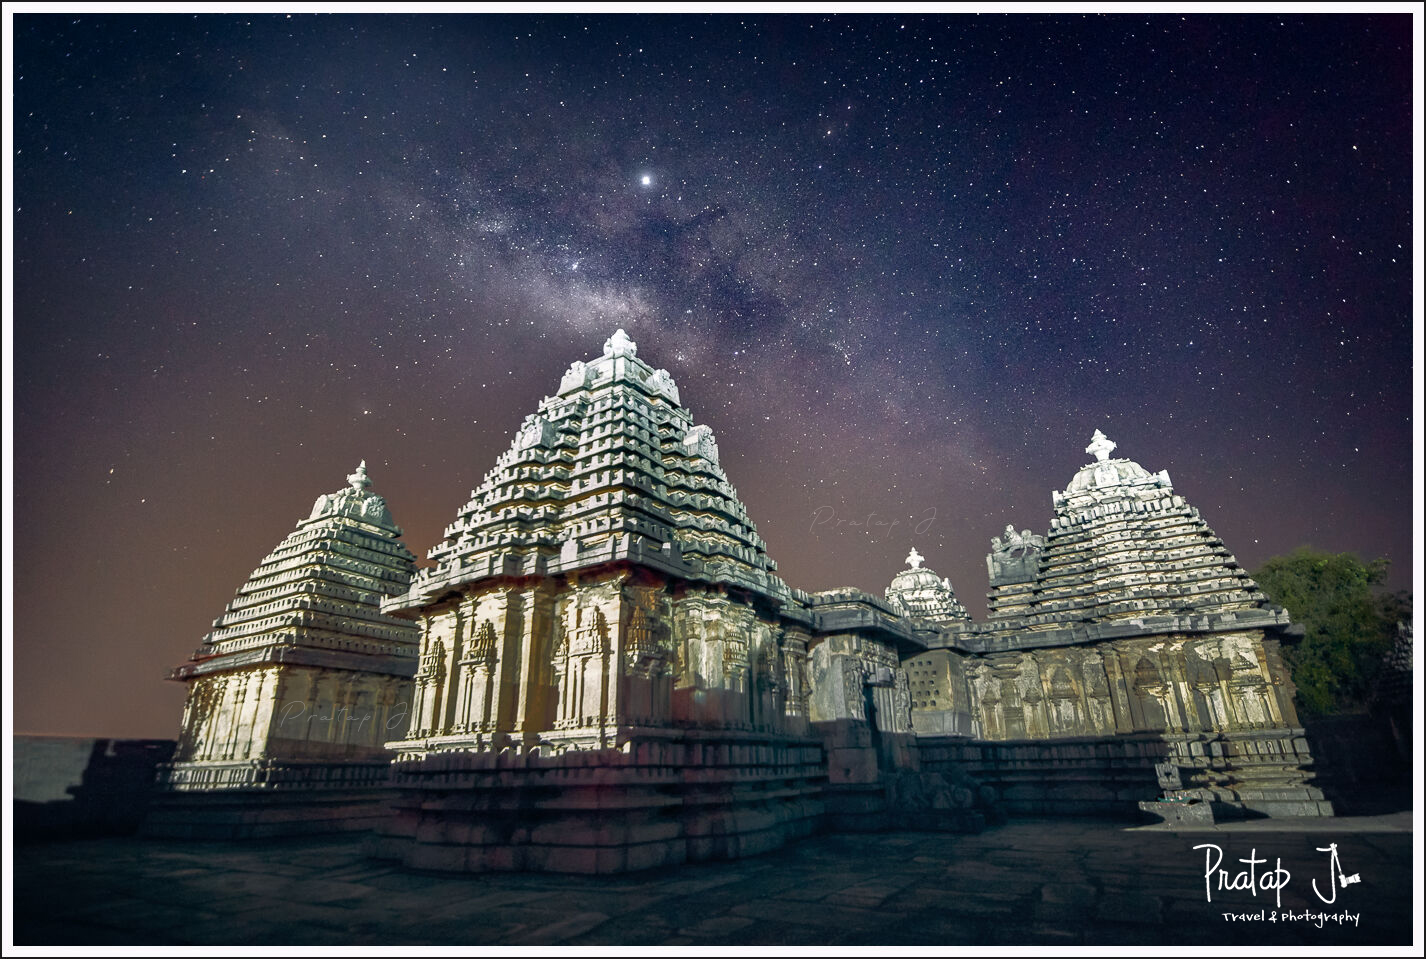 Milky Way over an ancient Hindu Hoysala Temple in Karnataka